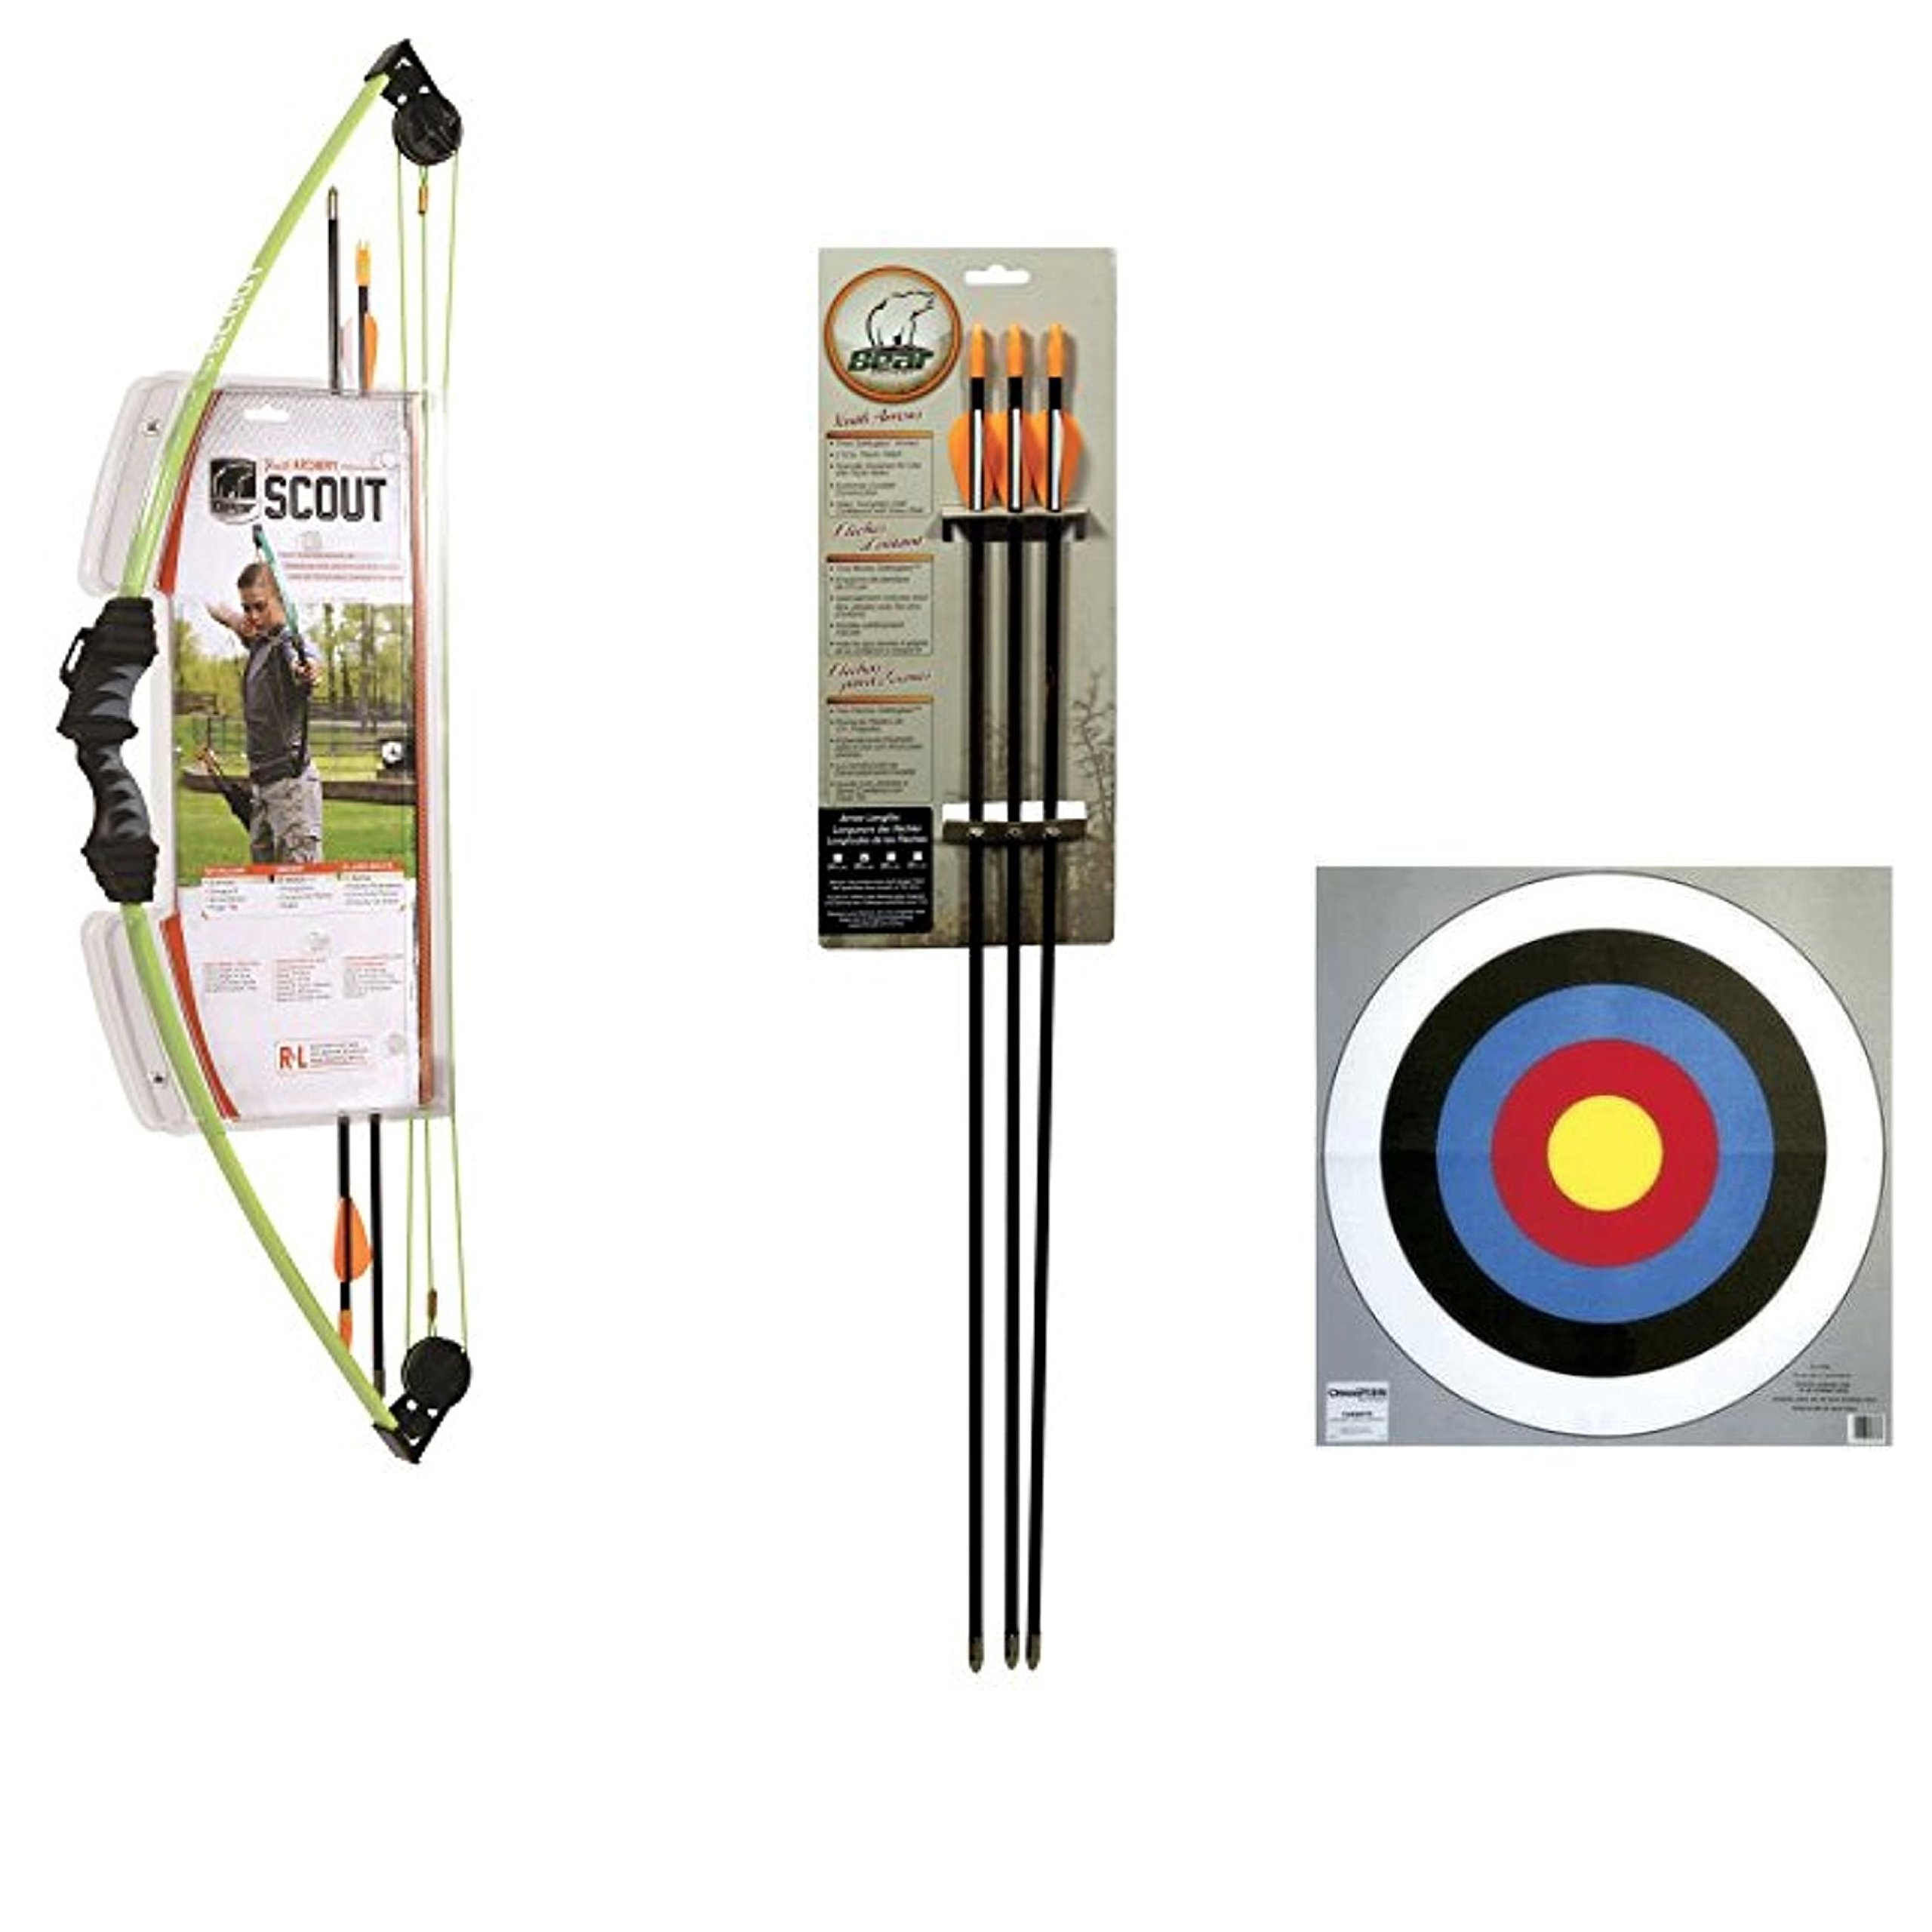 Bundle Includes 4 Items - 1004815 Bear Archery Scout Bow Set Flo Green and Bear Archery Youth Safetyglass Arrows (3 Per Card) – 24'' & 4 Champion Traps & Targets 24-Inch Bullseye Archery Target